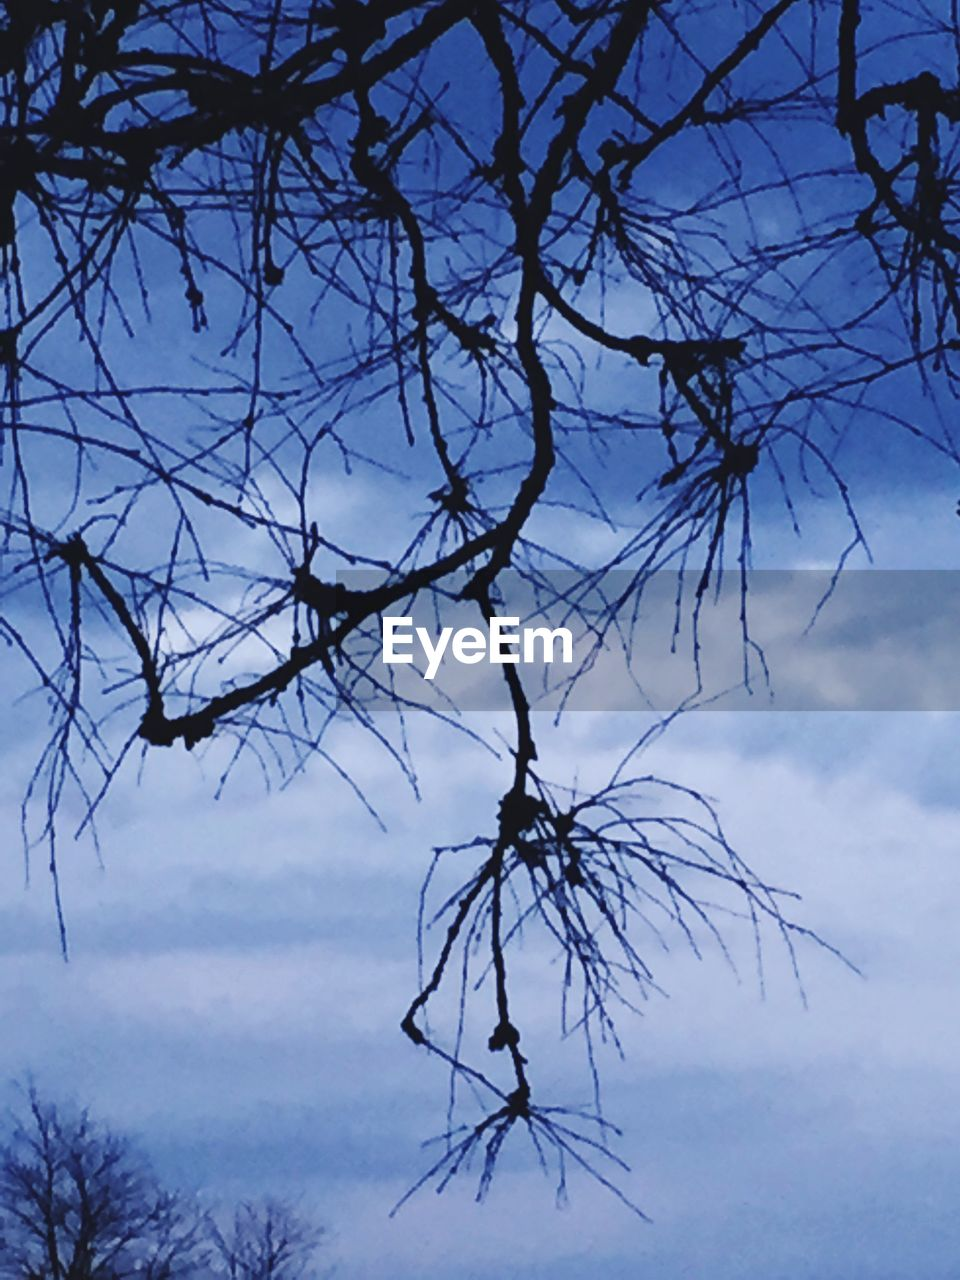 sky, tree, nature, beauty in nature, branch, low angle view, tranquility, bare tree, tranquil scene, no people, outdoors, silhouette, scenics, cloud - sky, day